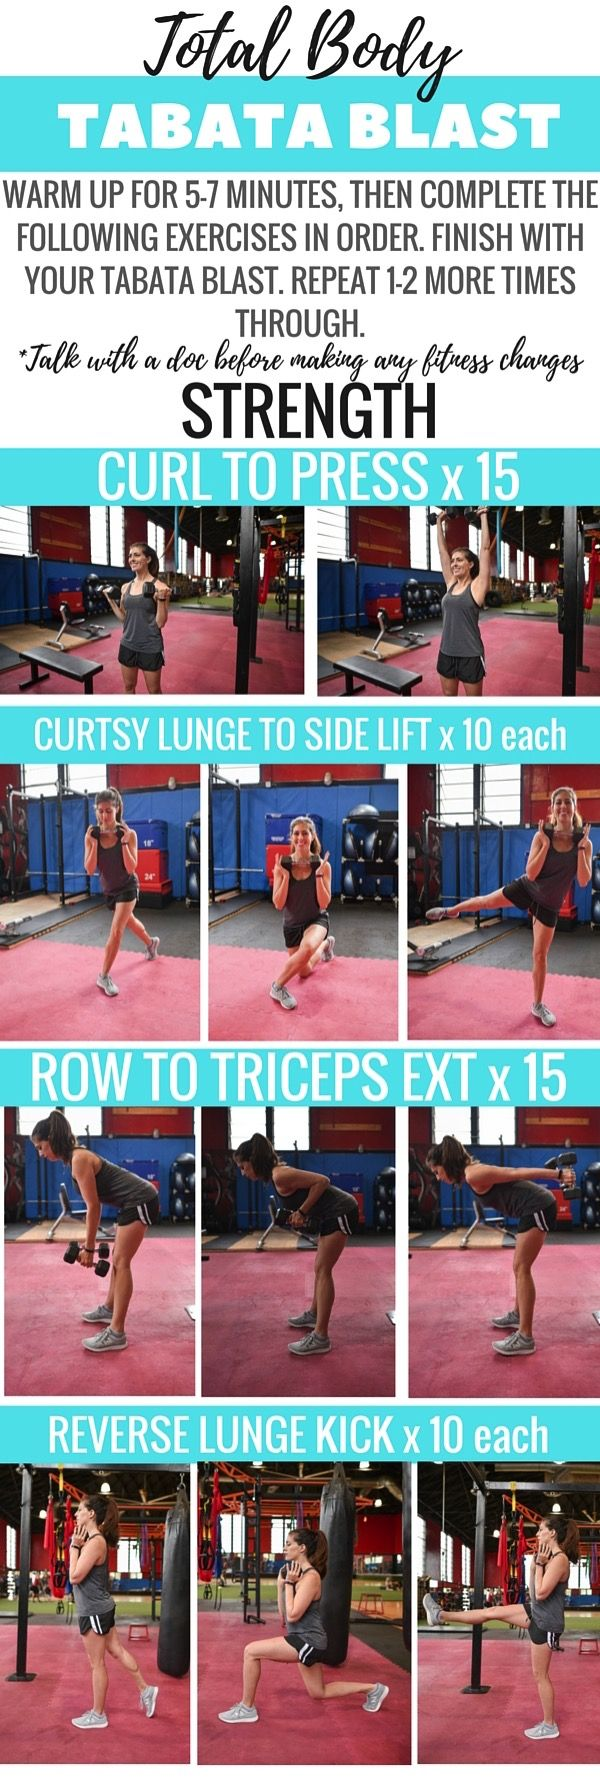 Quick strength circuit using dumbbells -- perfect to complete before a sweaty tabata